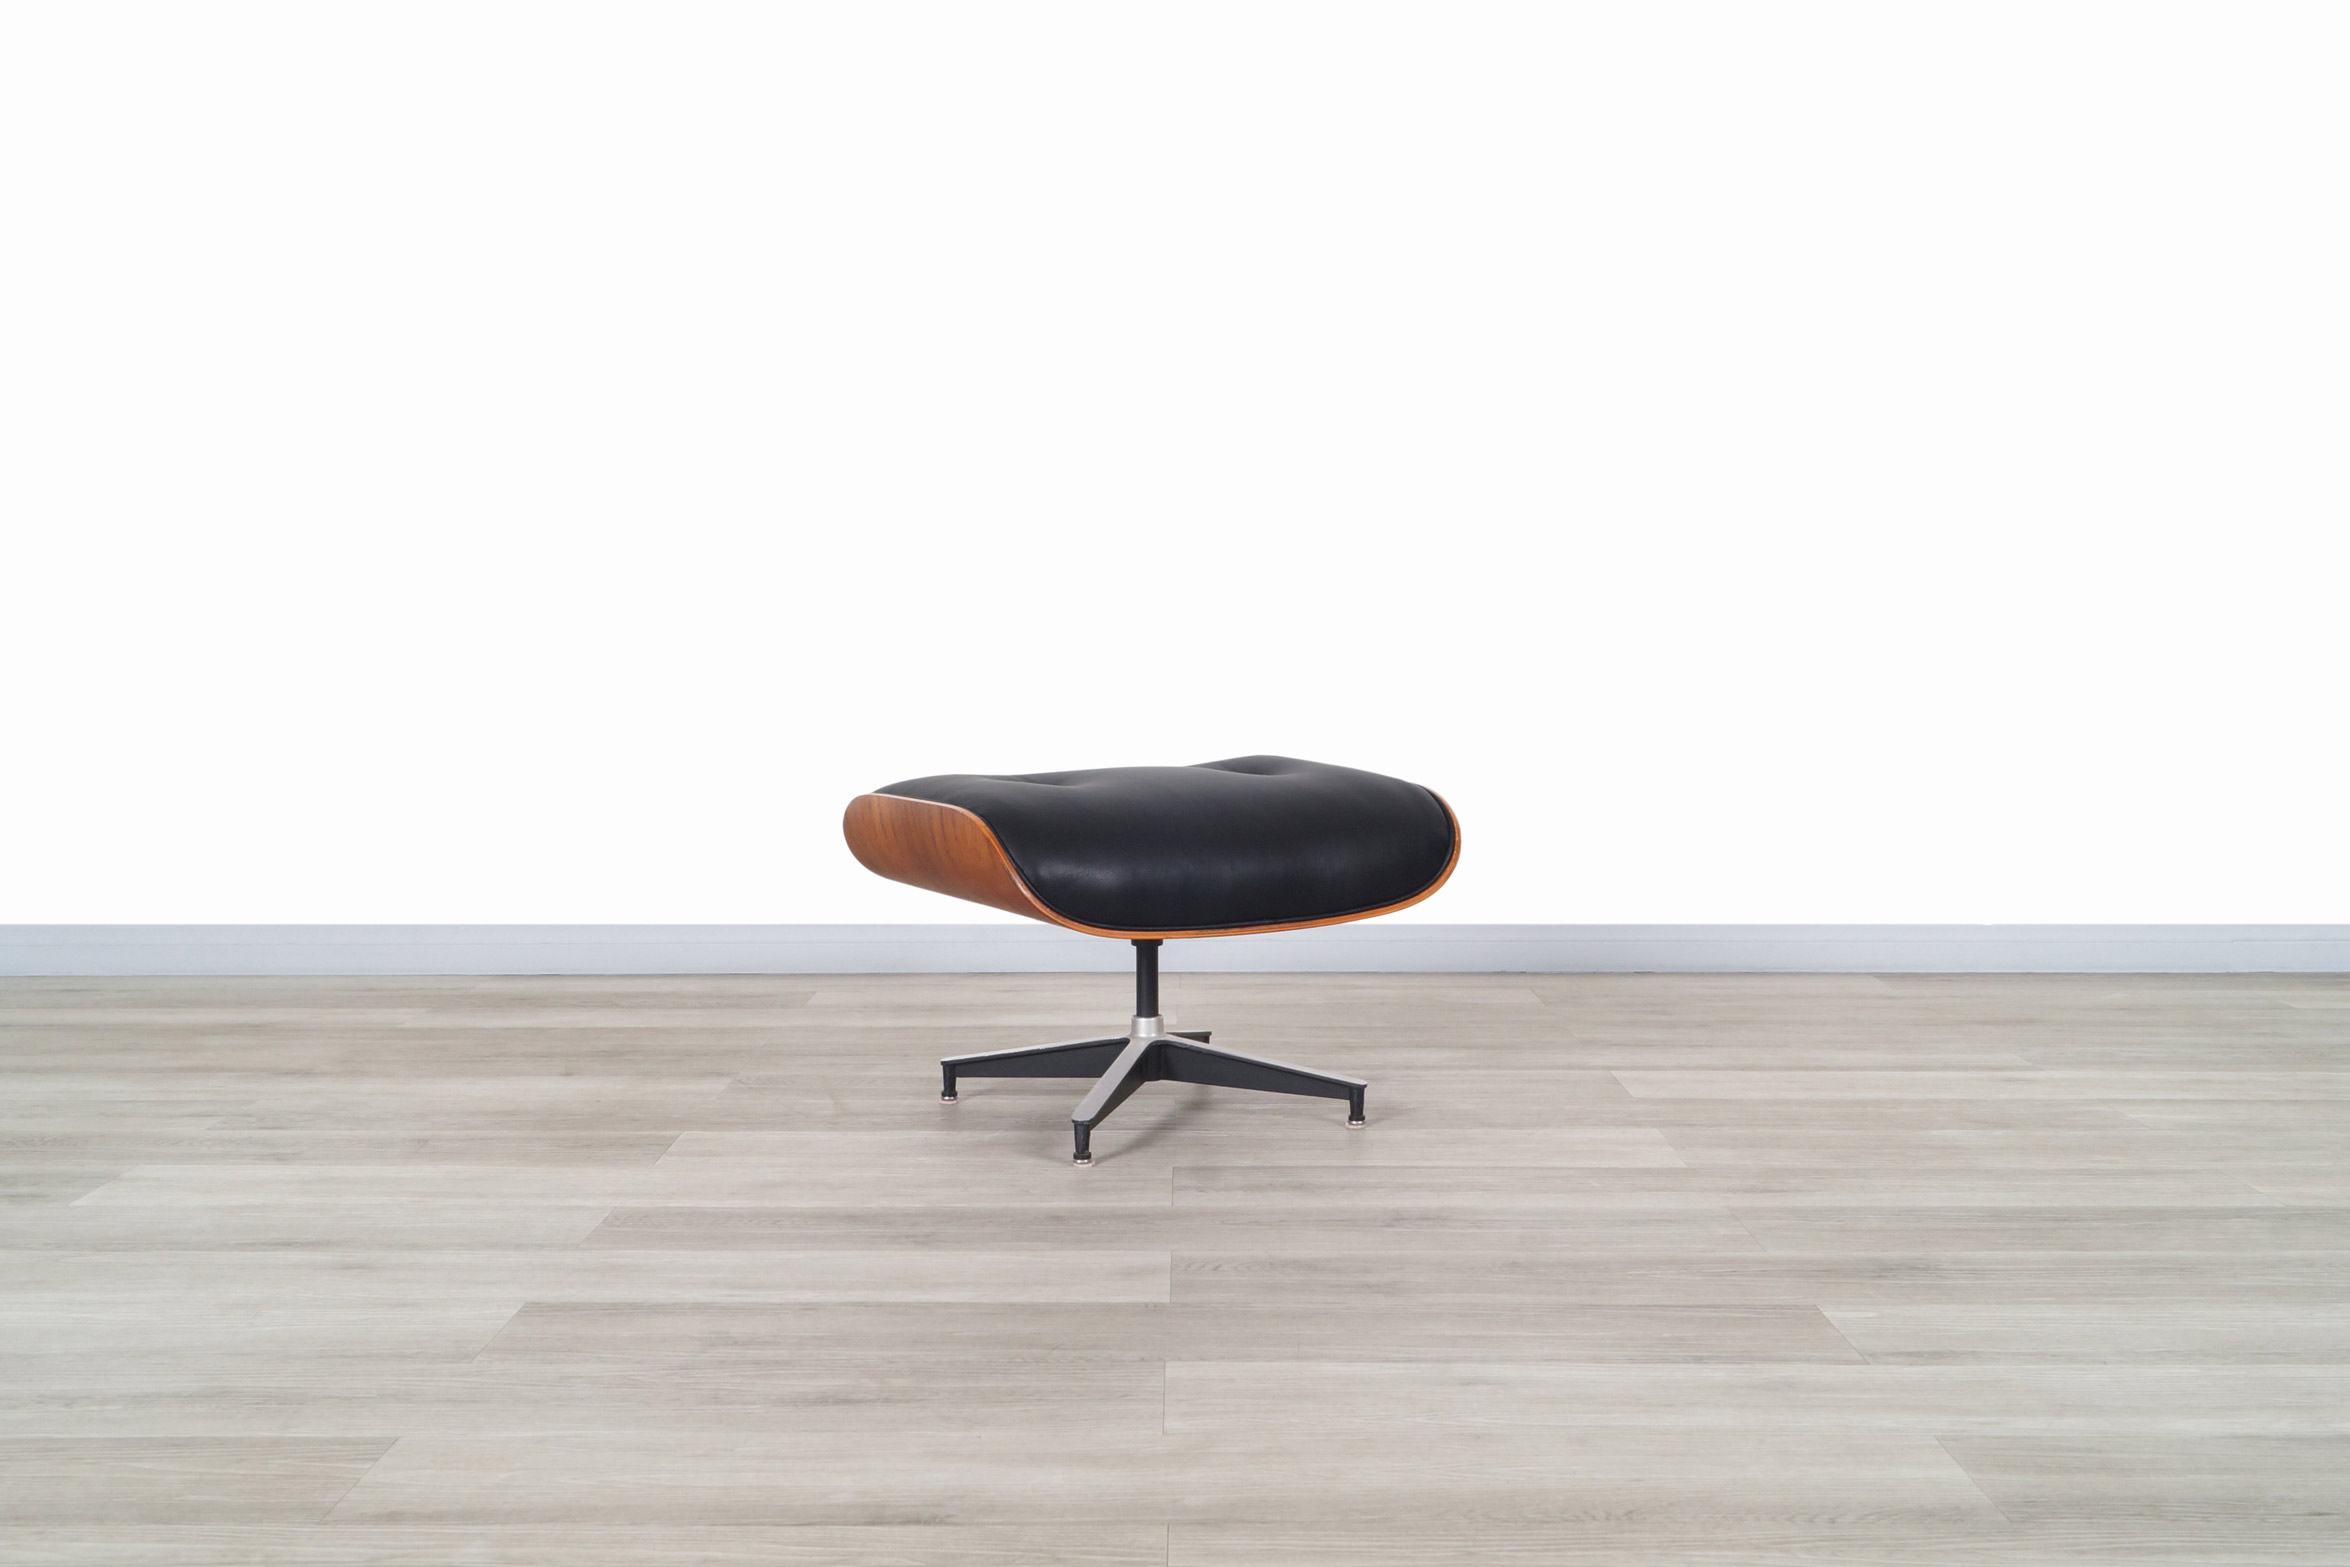 Charles Eames Rosewood Lounge Chair and Ottoman by Herman Miller